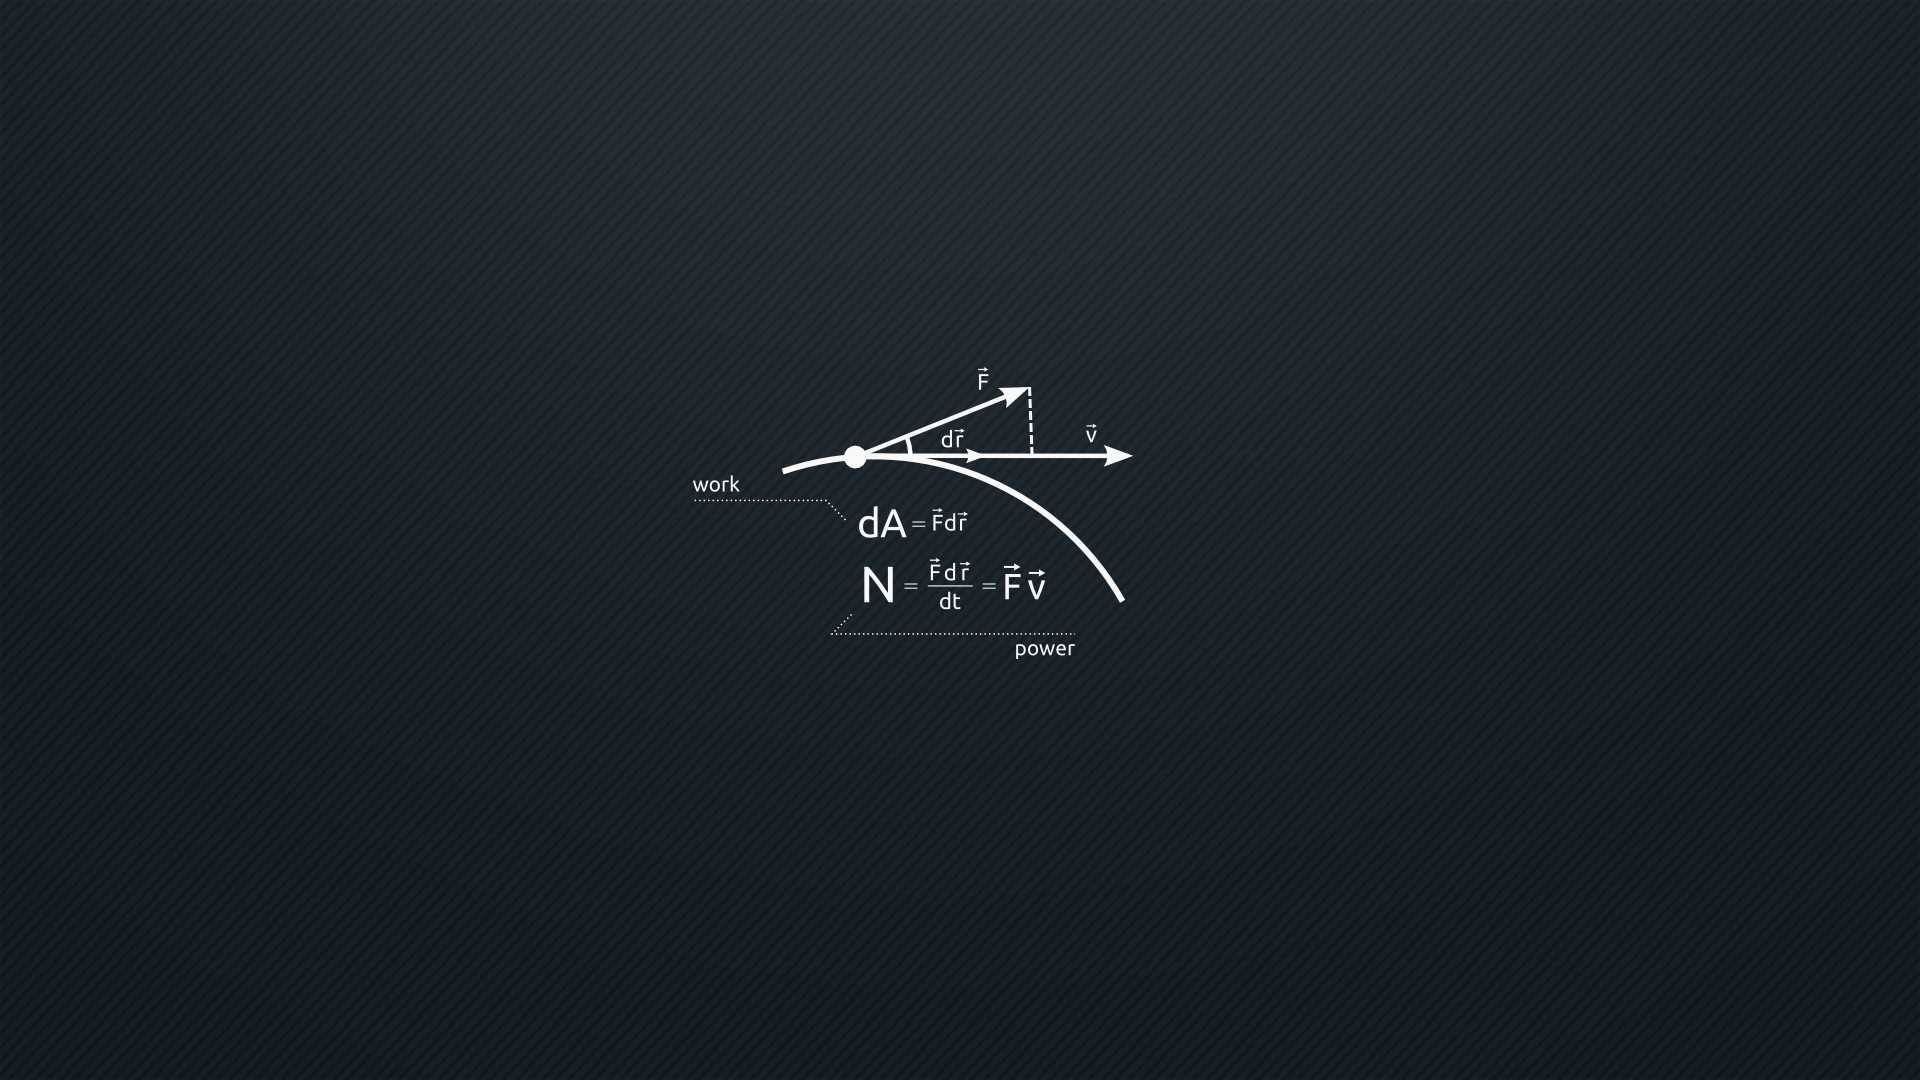 23 Minimalist wallpapers to get your week started right